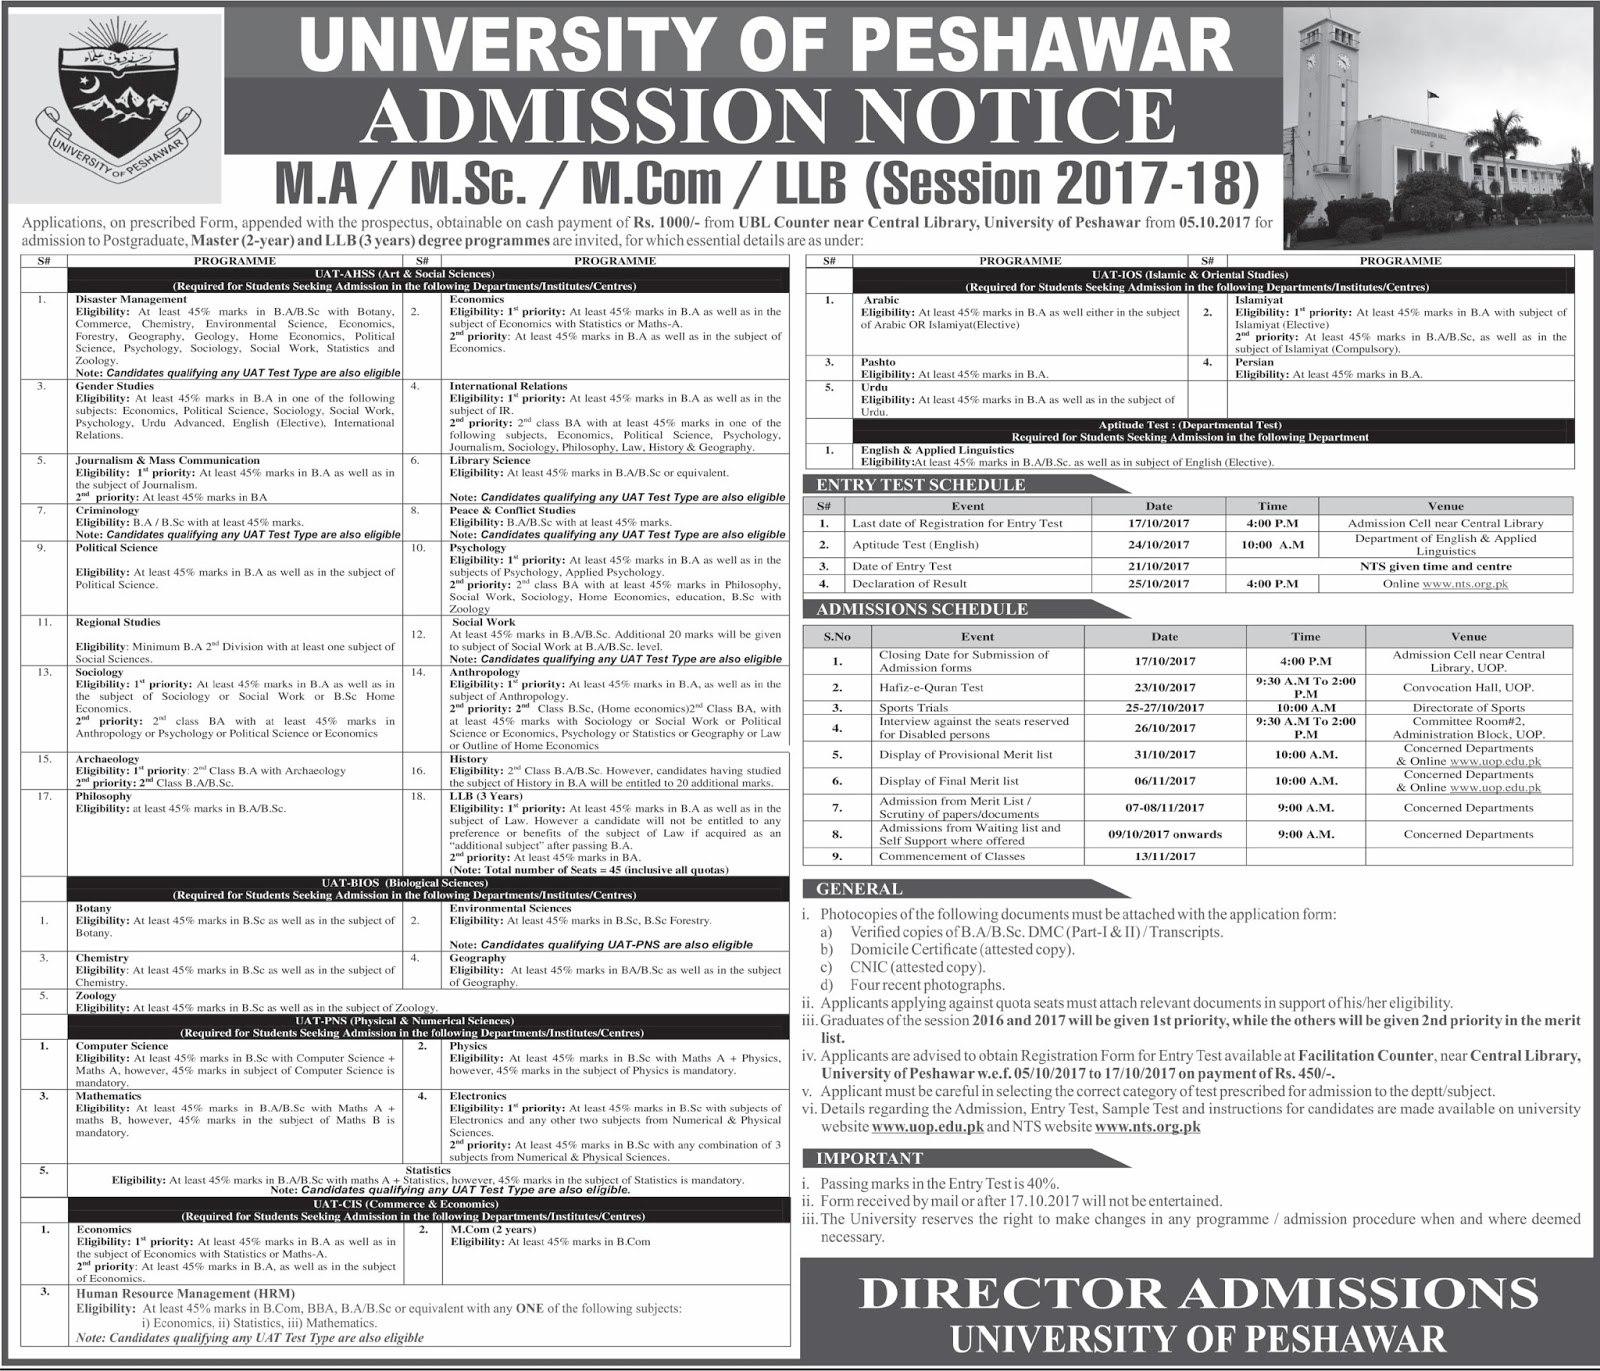 Admissions Open in University of Peshawar - 2017